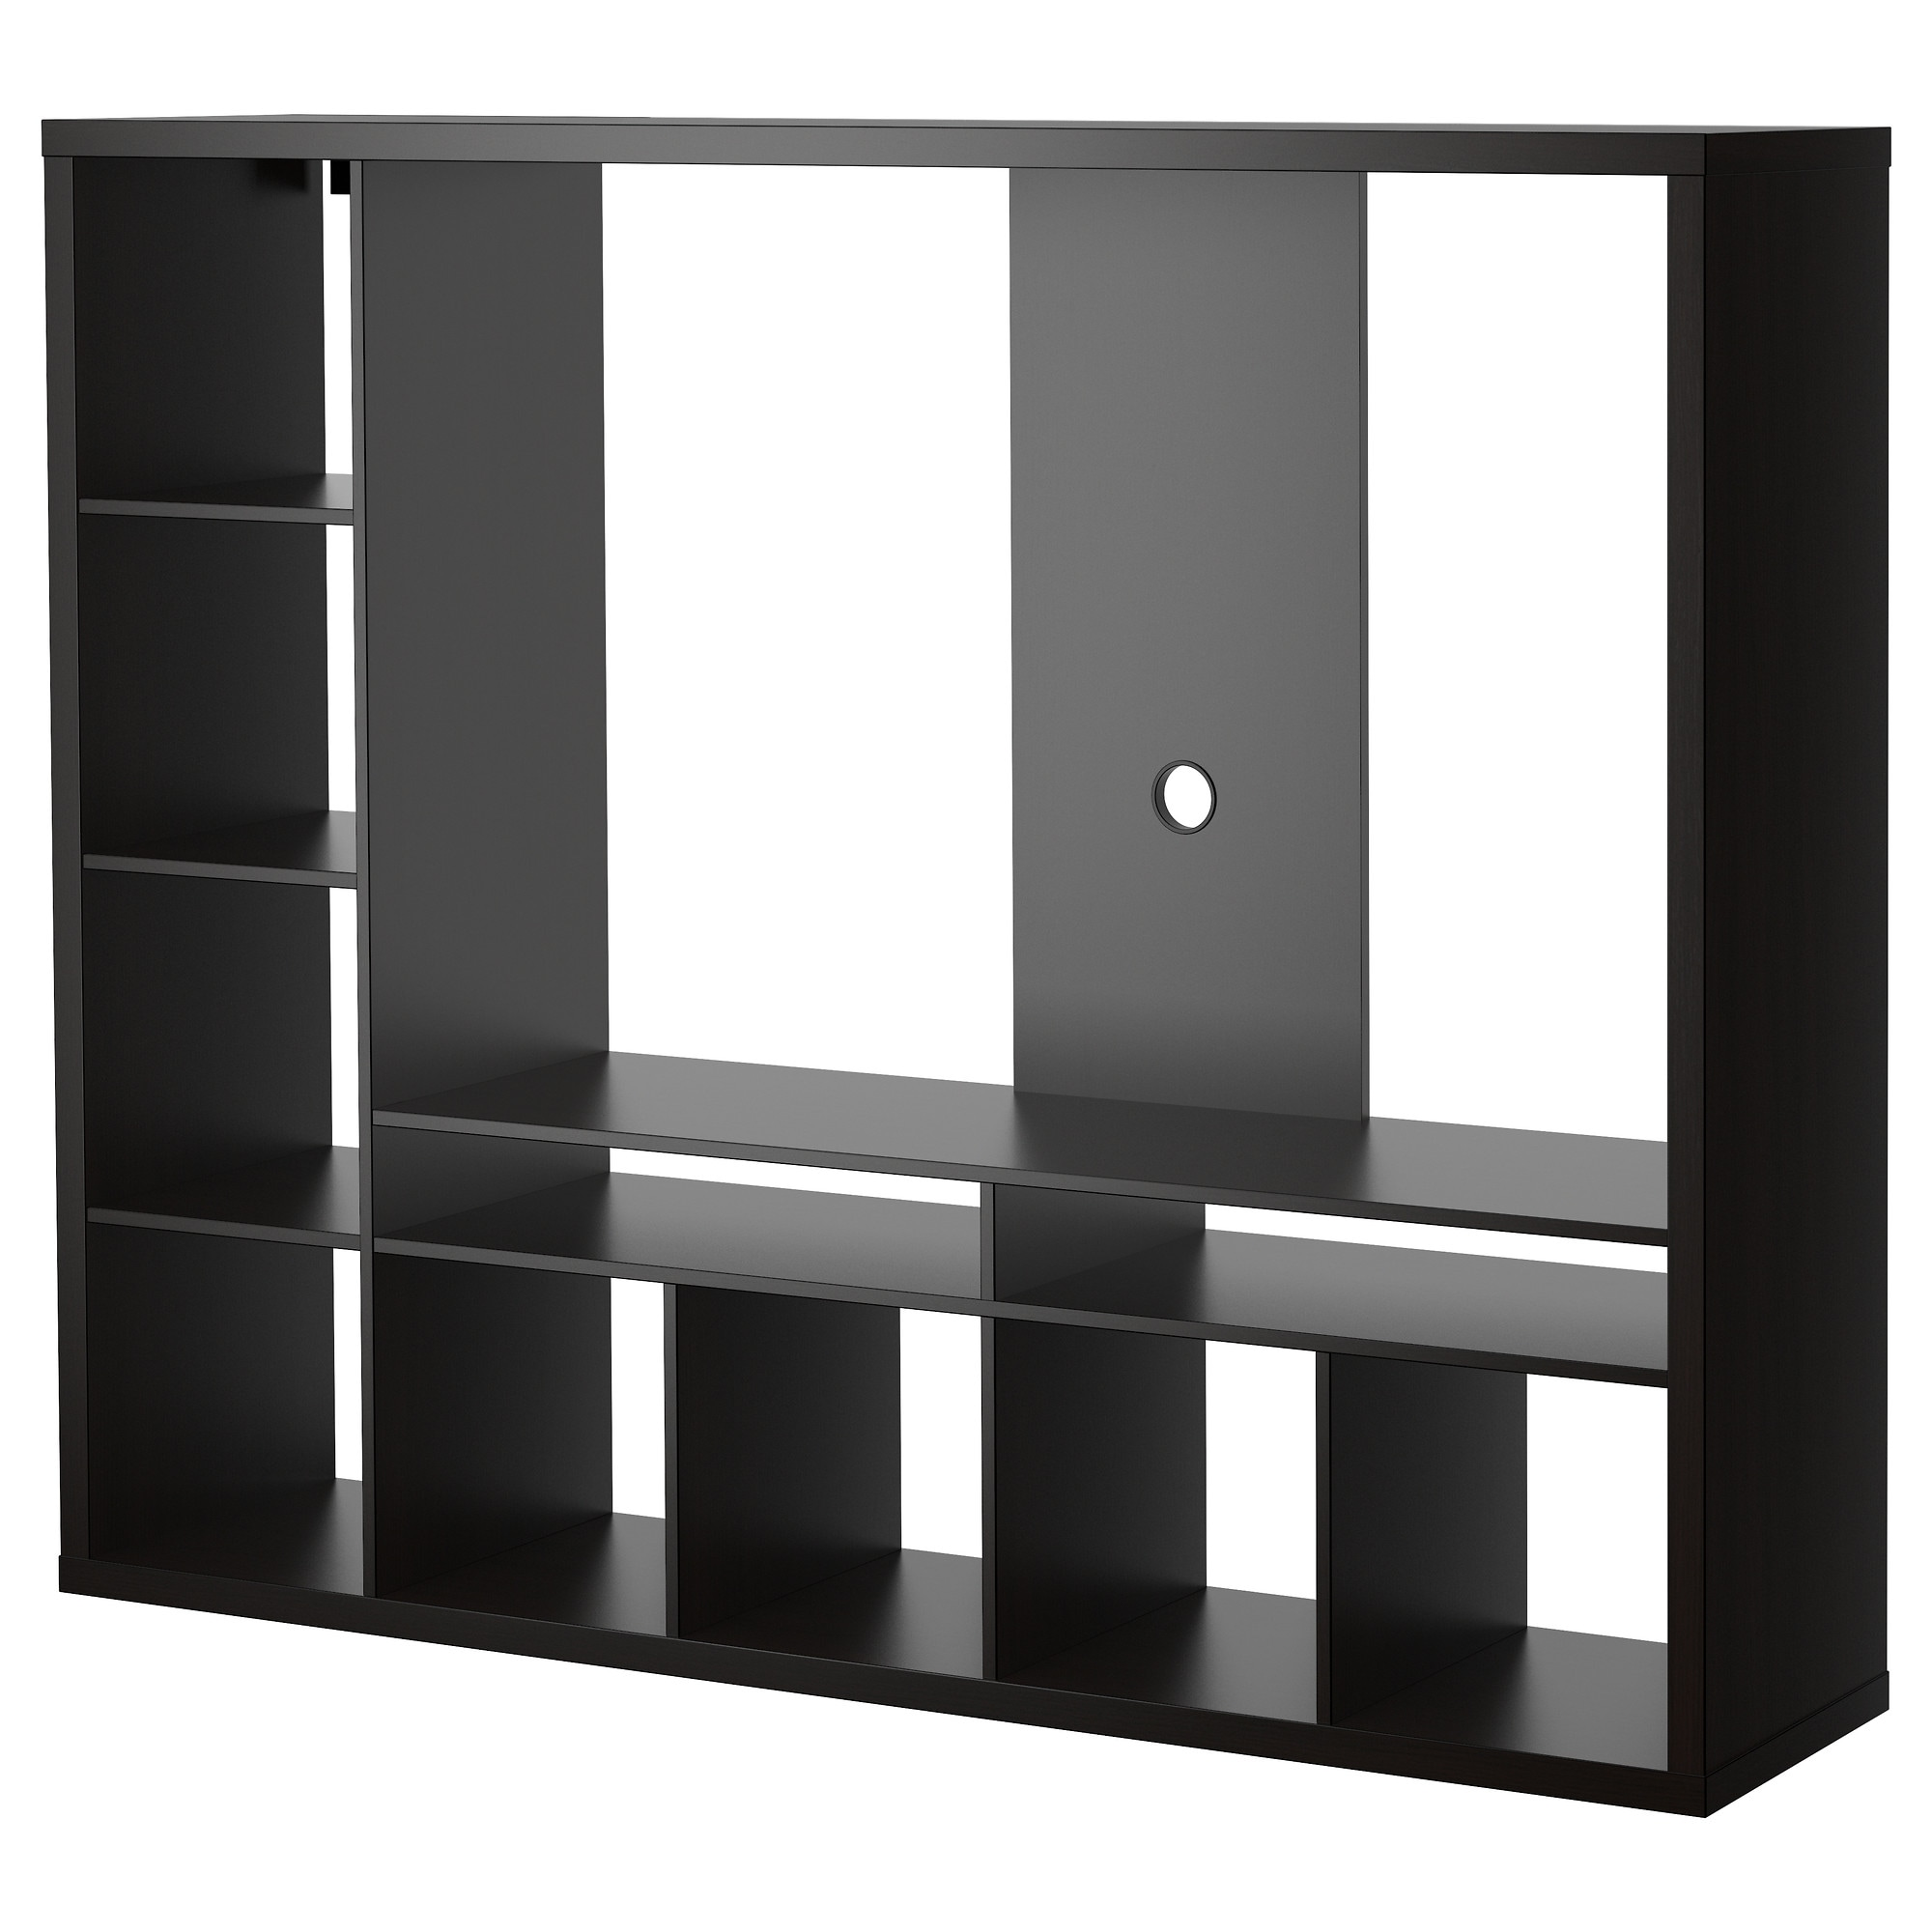 lappland tv storage unit black brown ikea - Media Stand Ikea